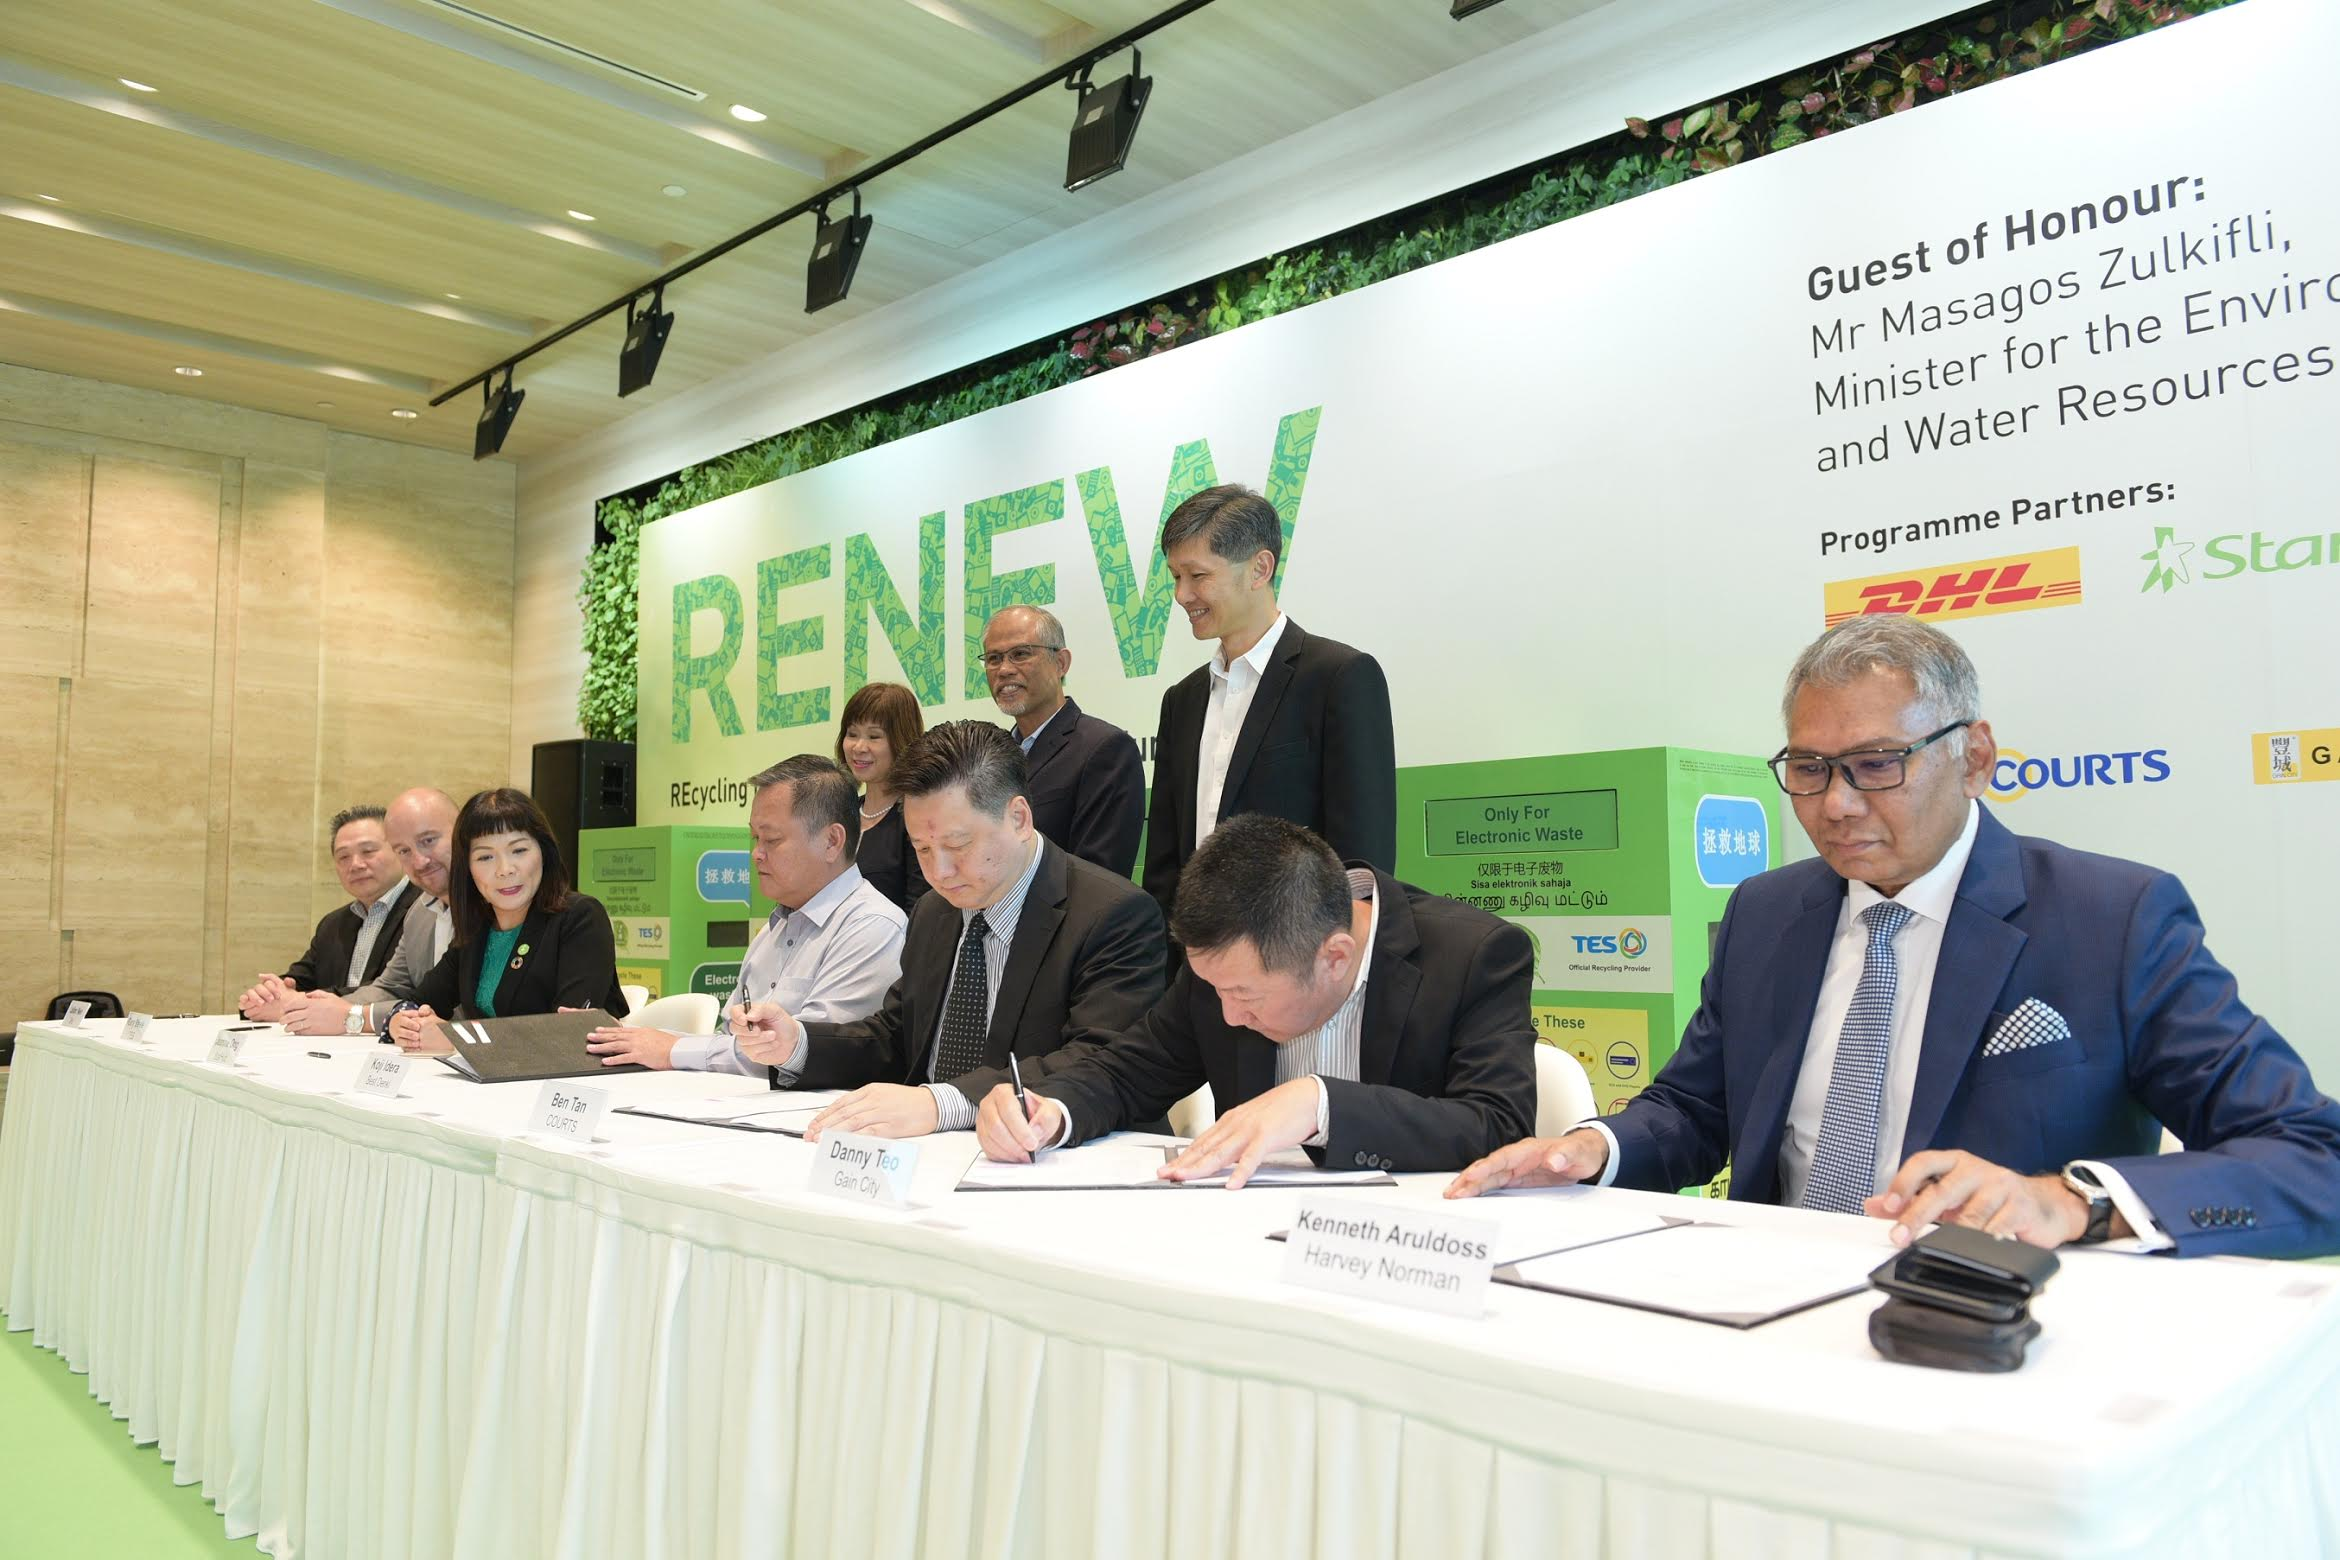 Signing of MOU between retailers, StarHub, DHL and TES. Photo courtesy: Starhub.